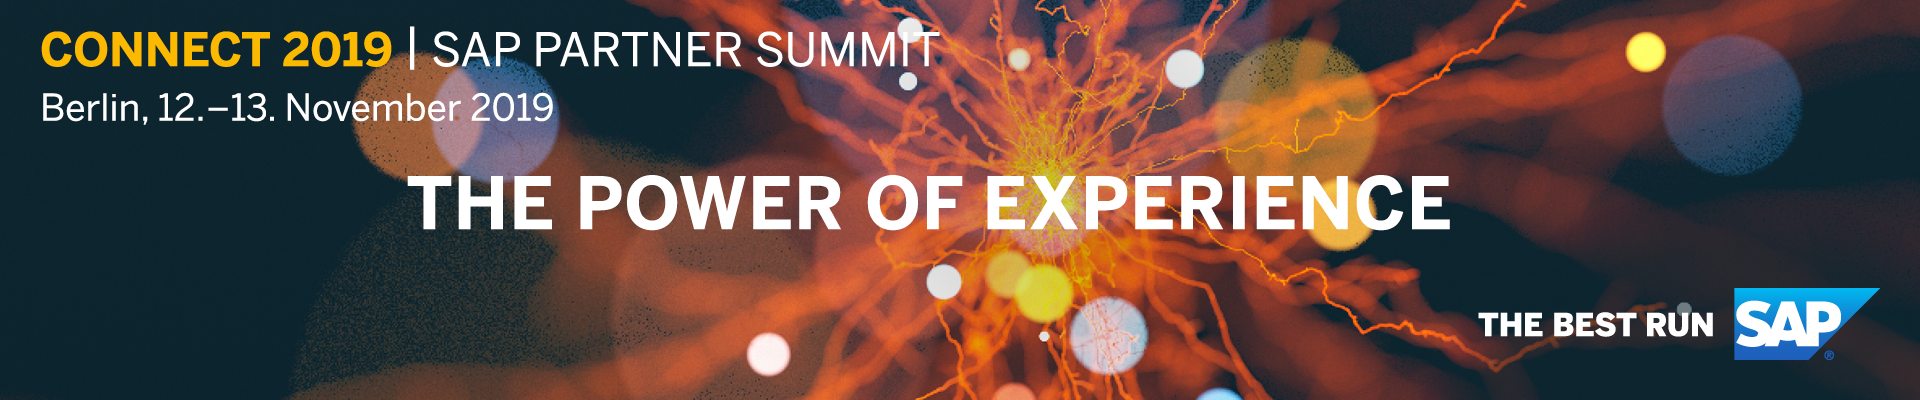 Connect 2019 | SAP Partner Summit